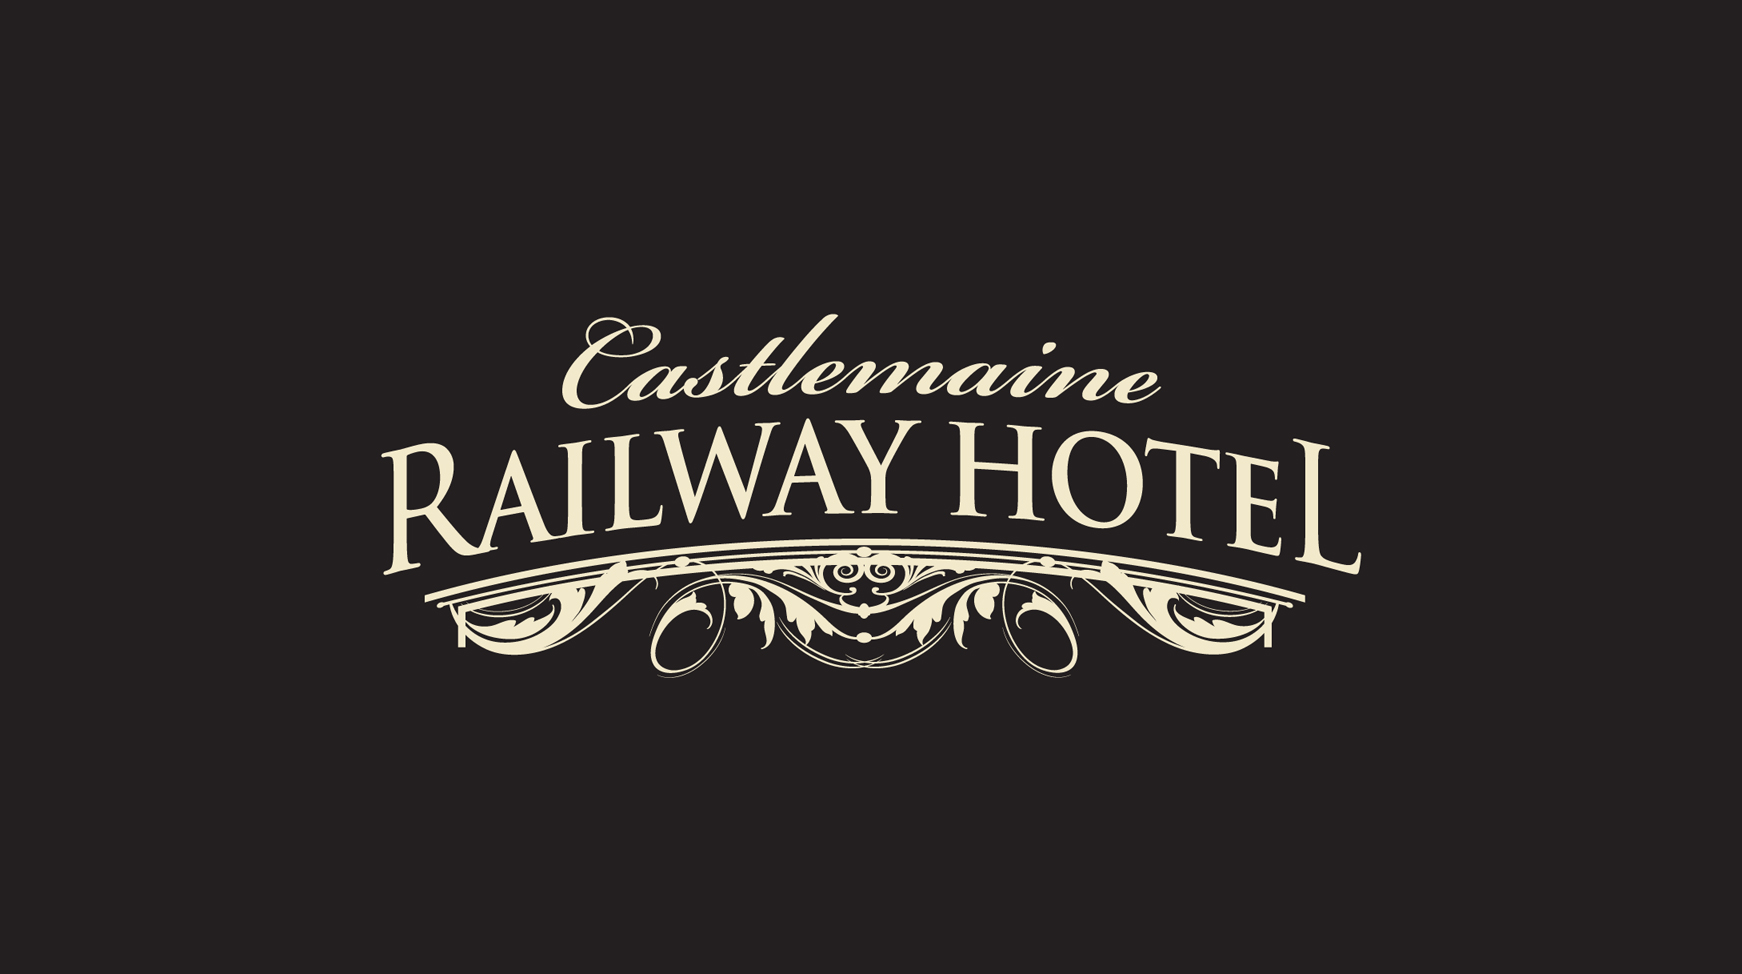 Railway Hotel Castlemaine - Accommodation Mooloolaba